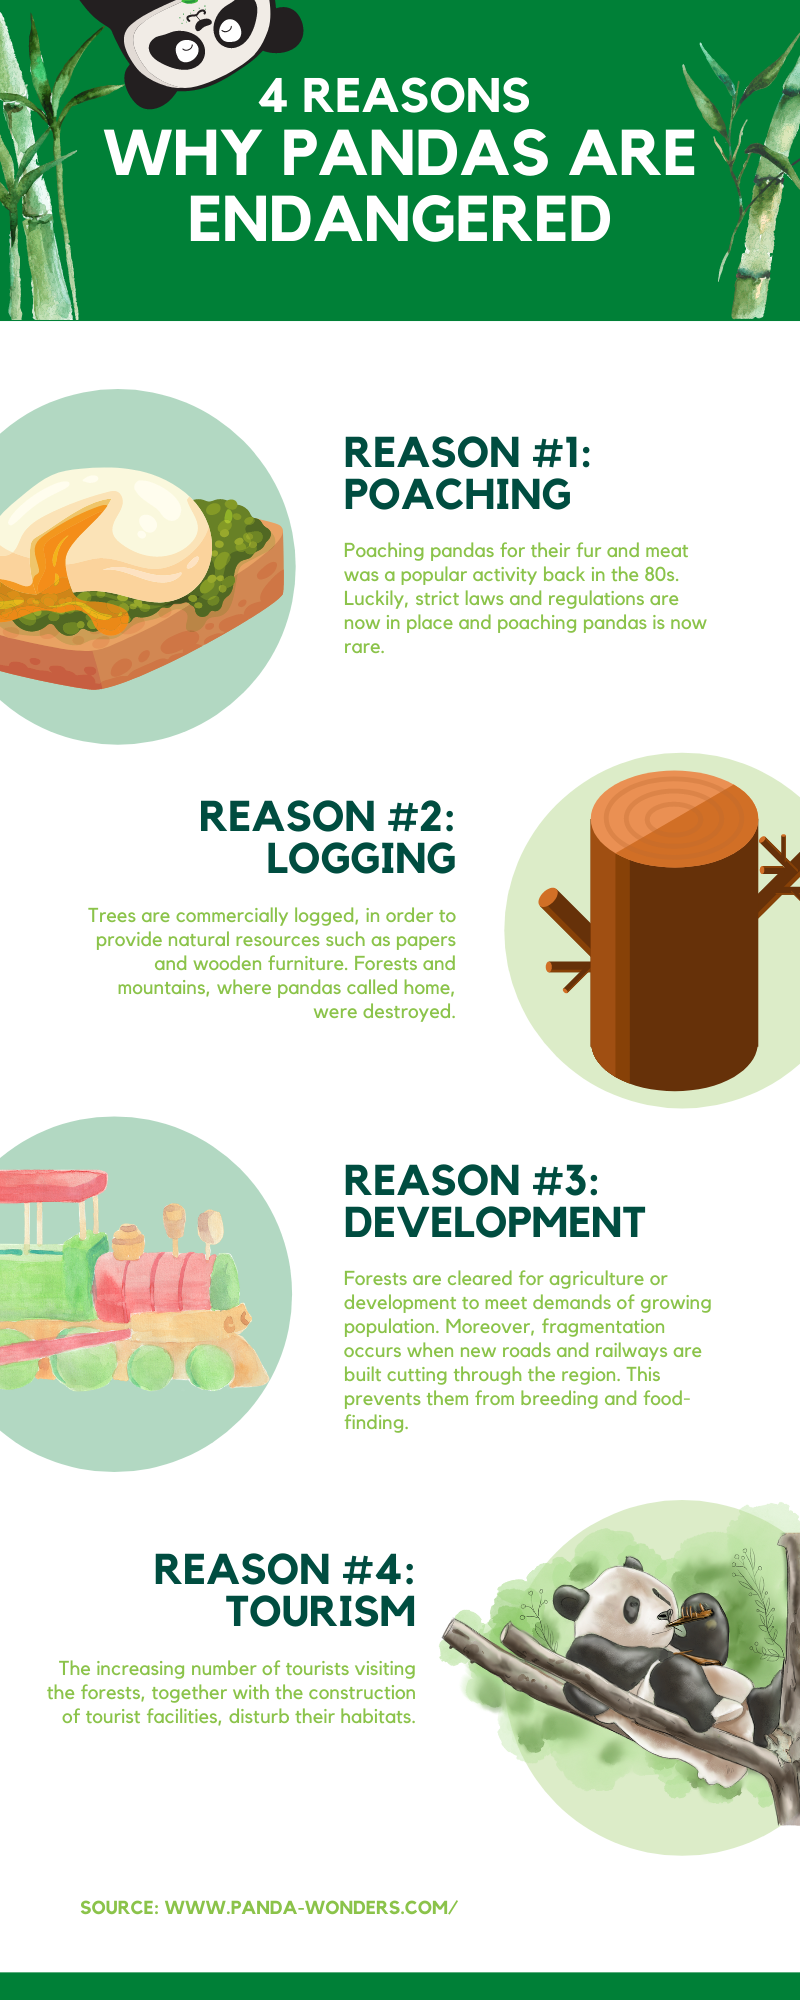 Reasons Why Pandas Are Endangered - Infographic